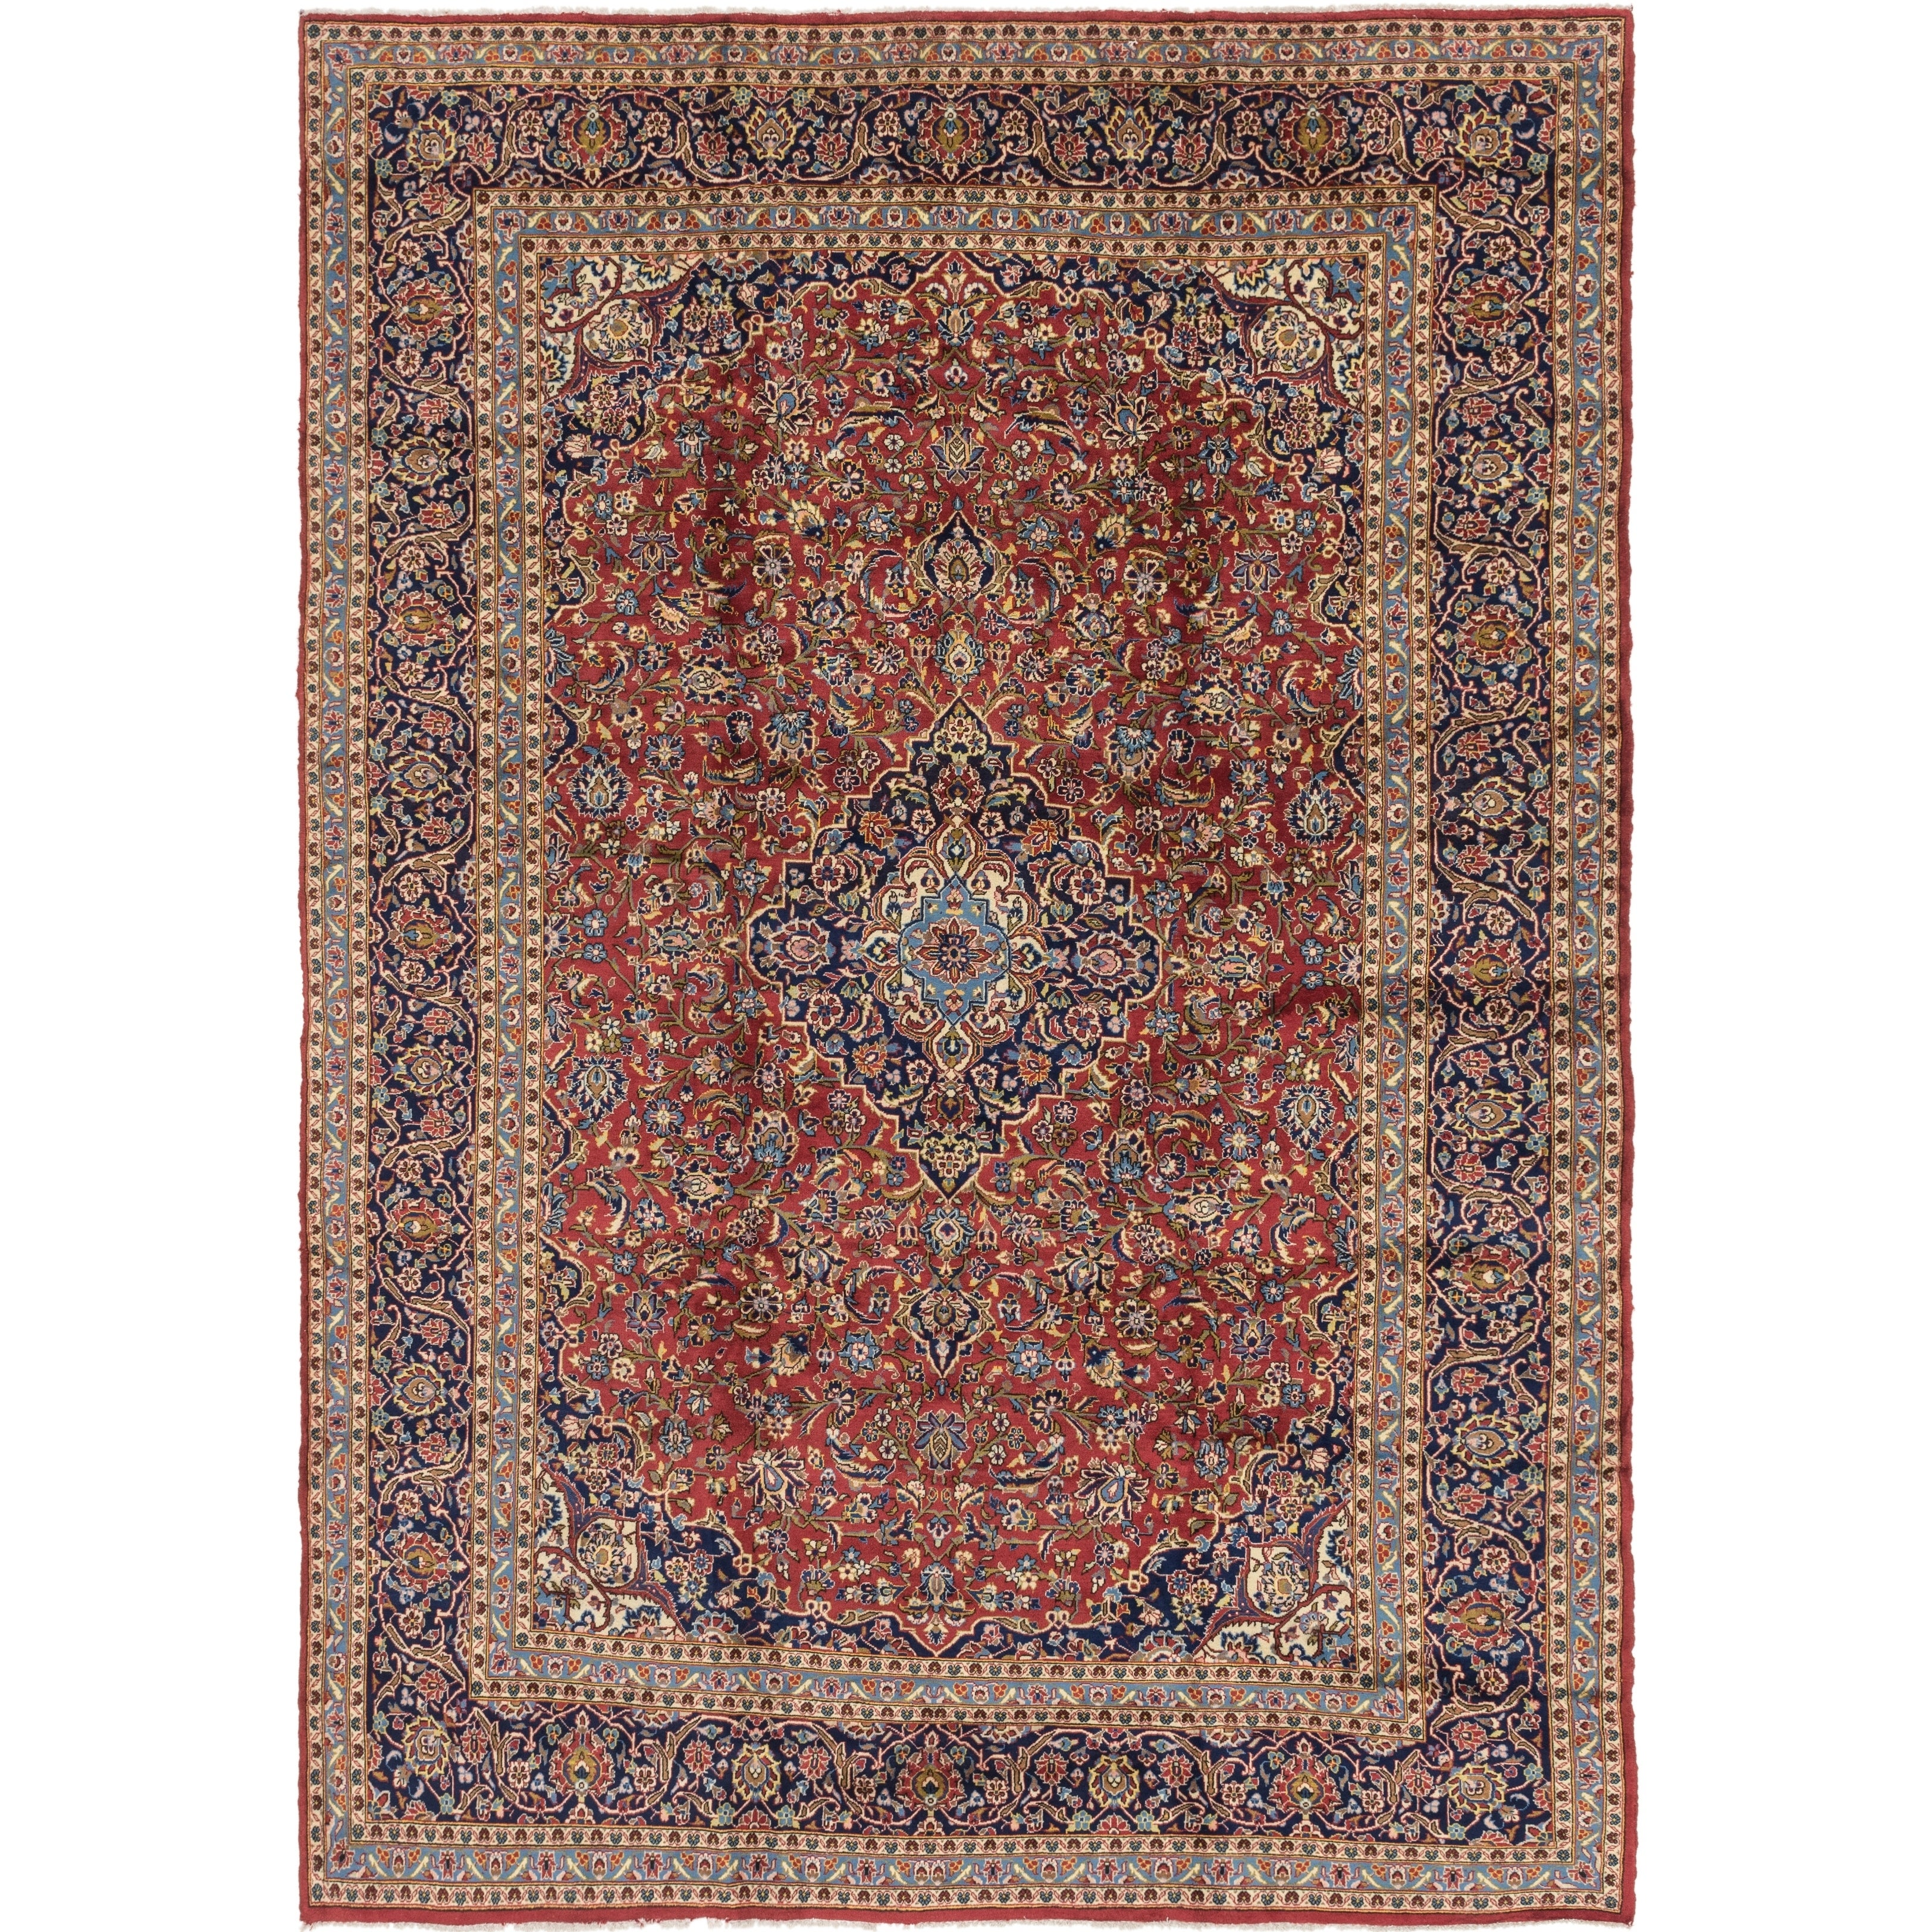 Hand Knotted Kashan Semi Antique Wool Area Rug - 9 10 x 14 (Red - 9 10 x 14)